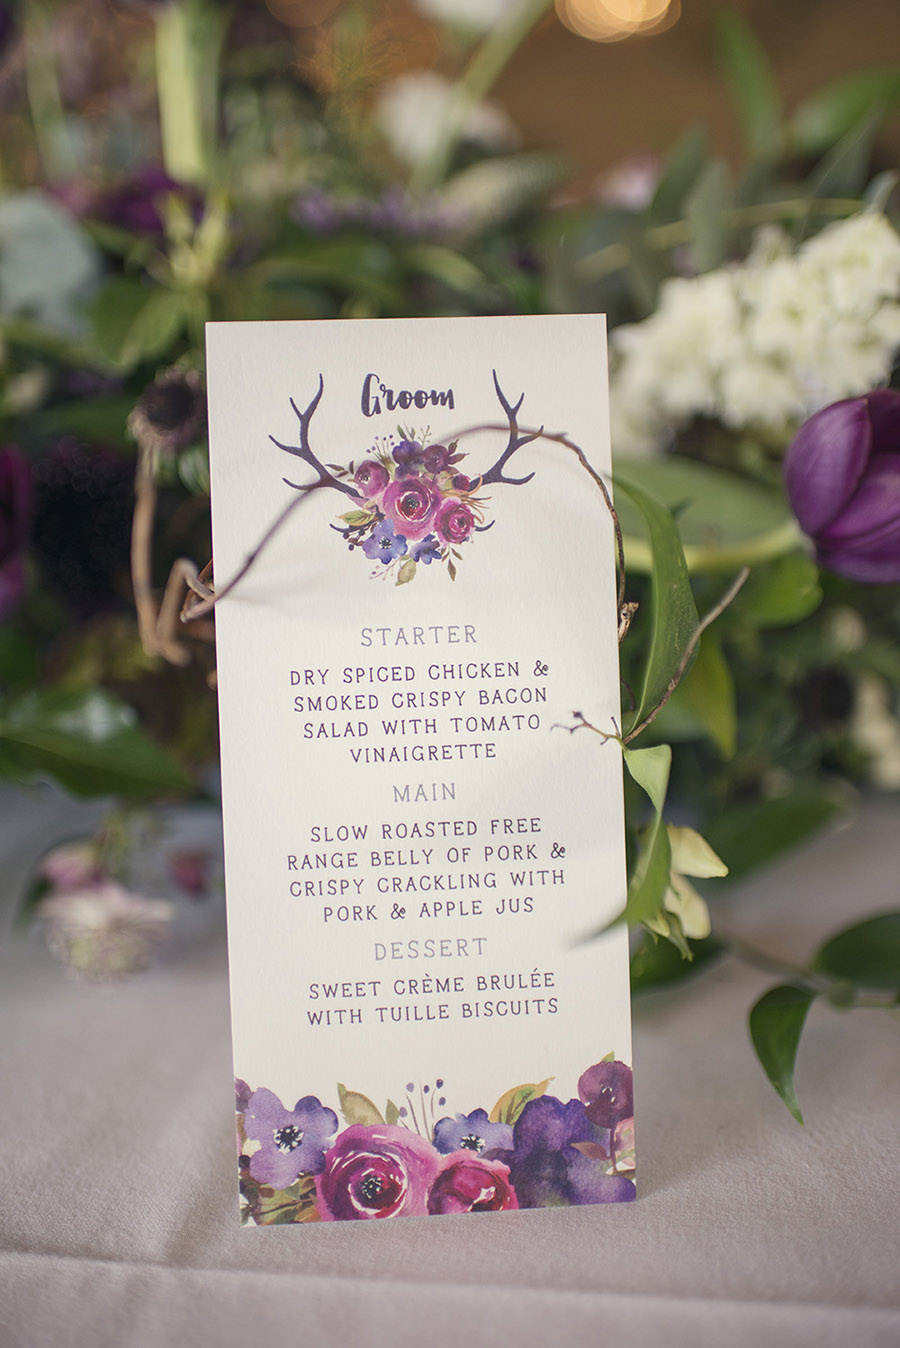 Gatsby vintage wedding at Crockwell Farm, images by Jodie Cooling Photography (24)